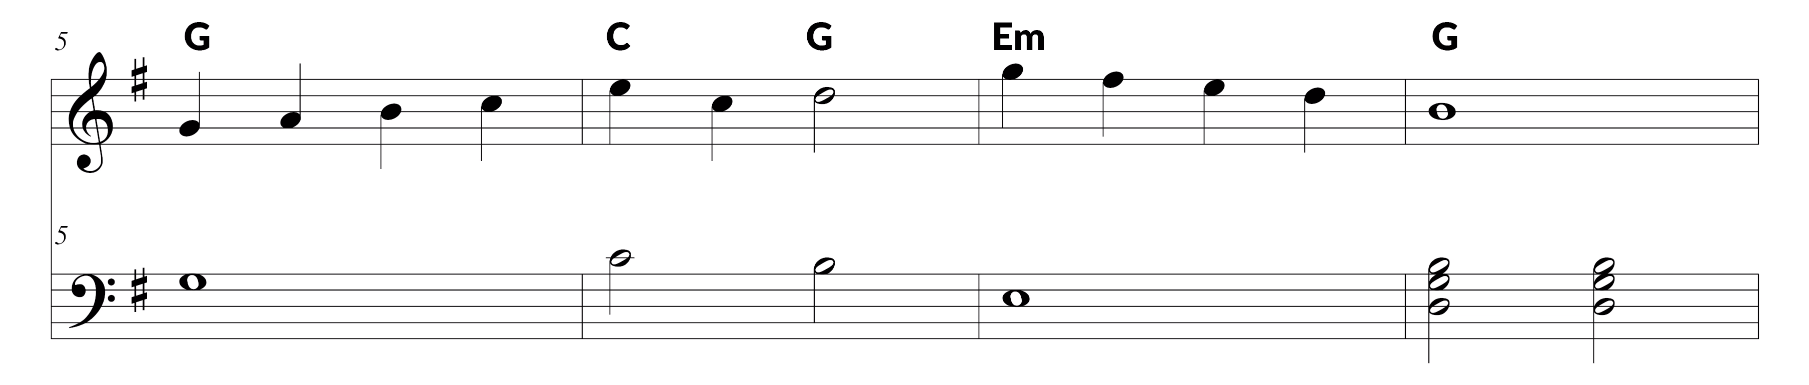 Music Theory For The Dropouts 7 How To Tackle A New Piece Of Music